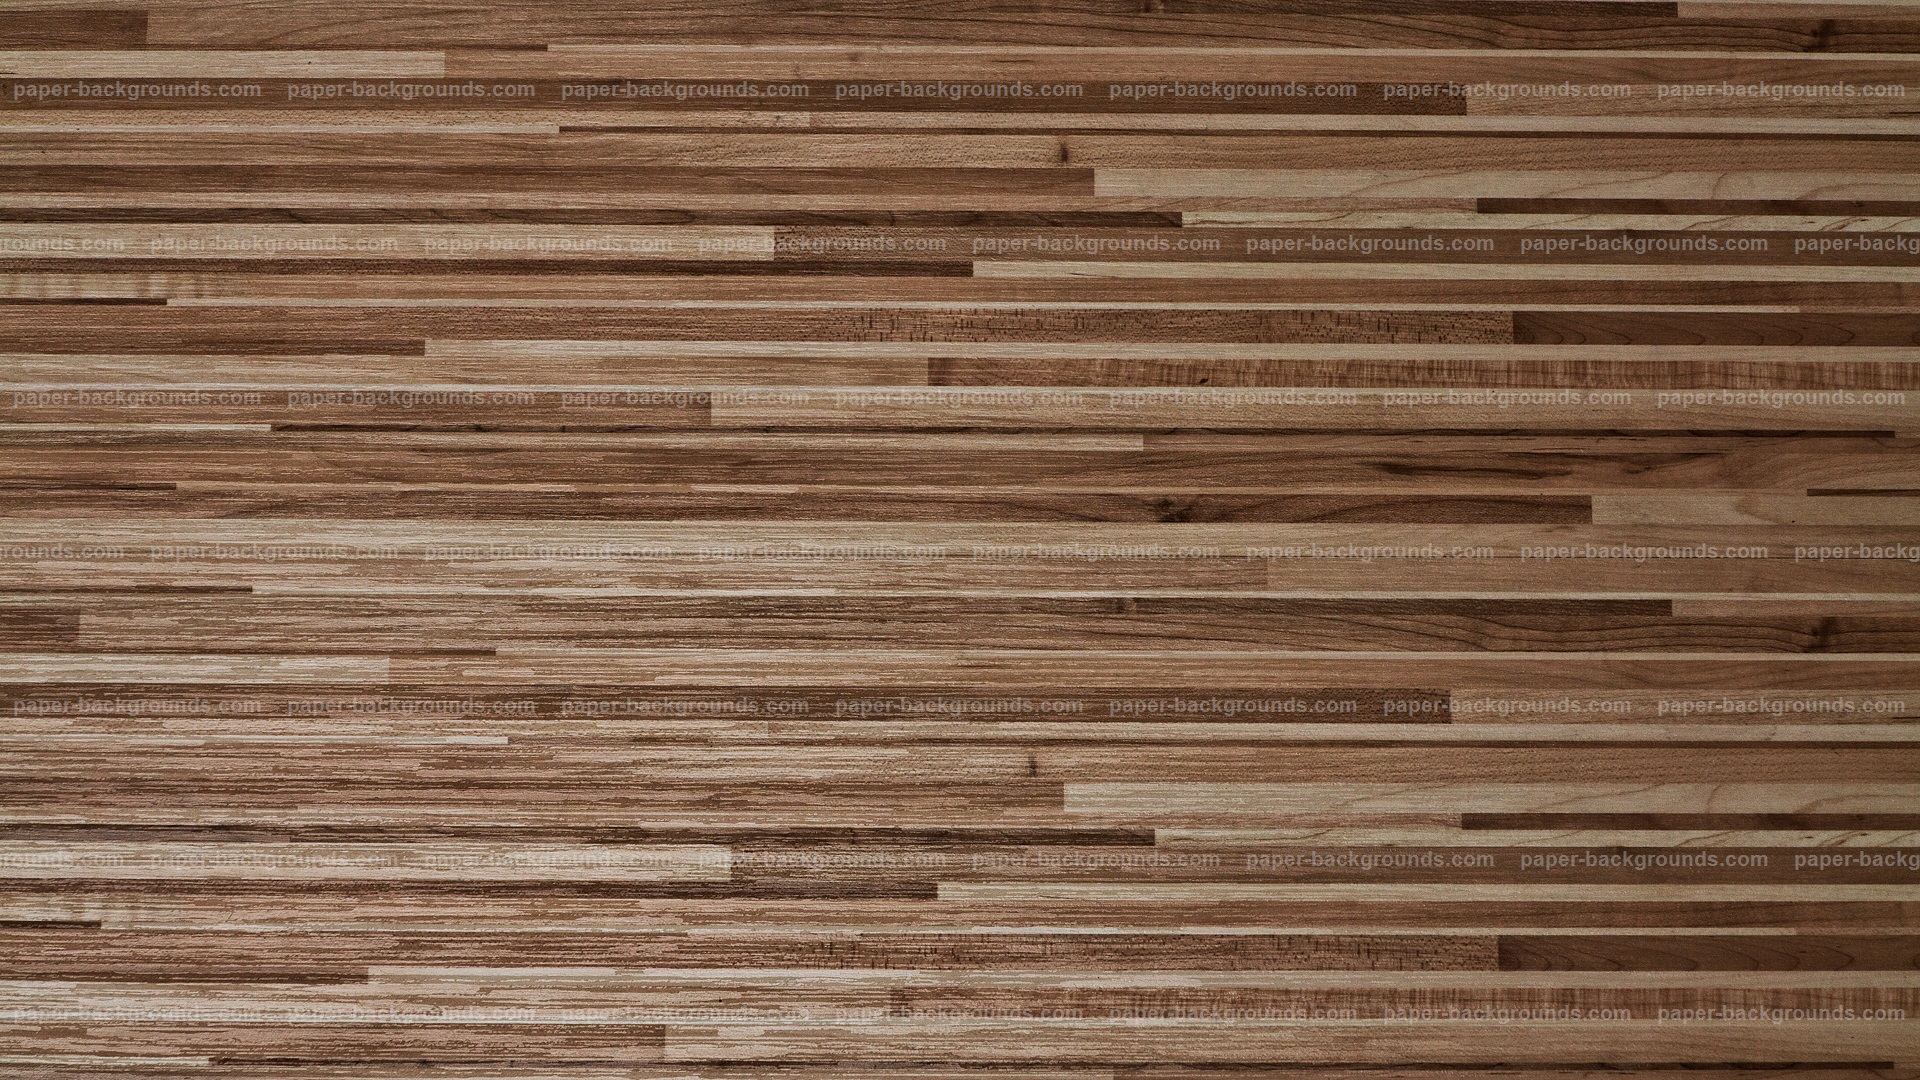 Wood Floor Pattern Background HD